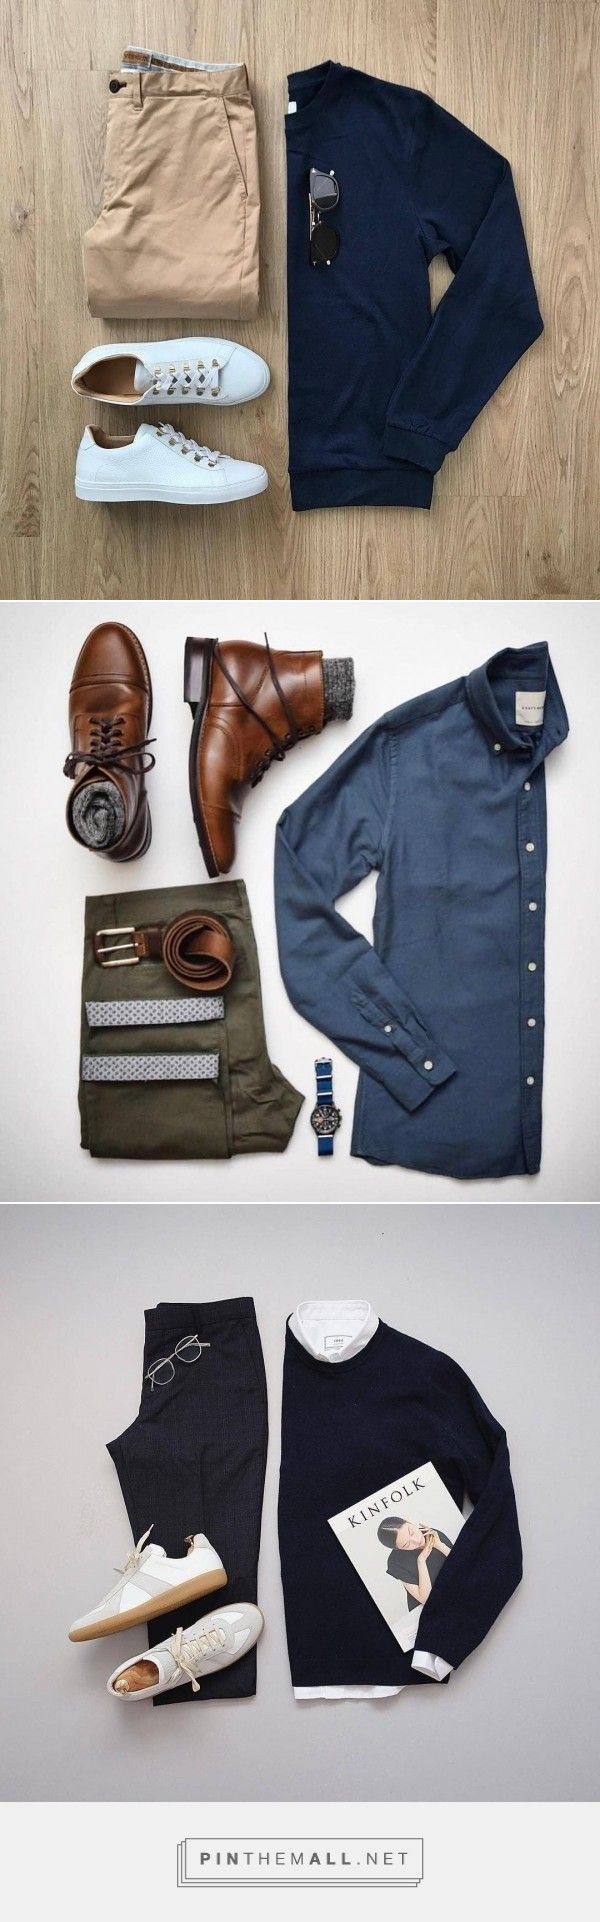 Outfit Grids To Help You Look Great.